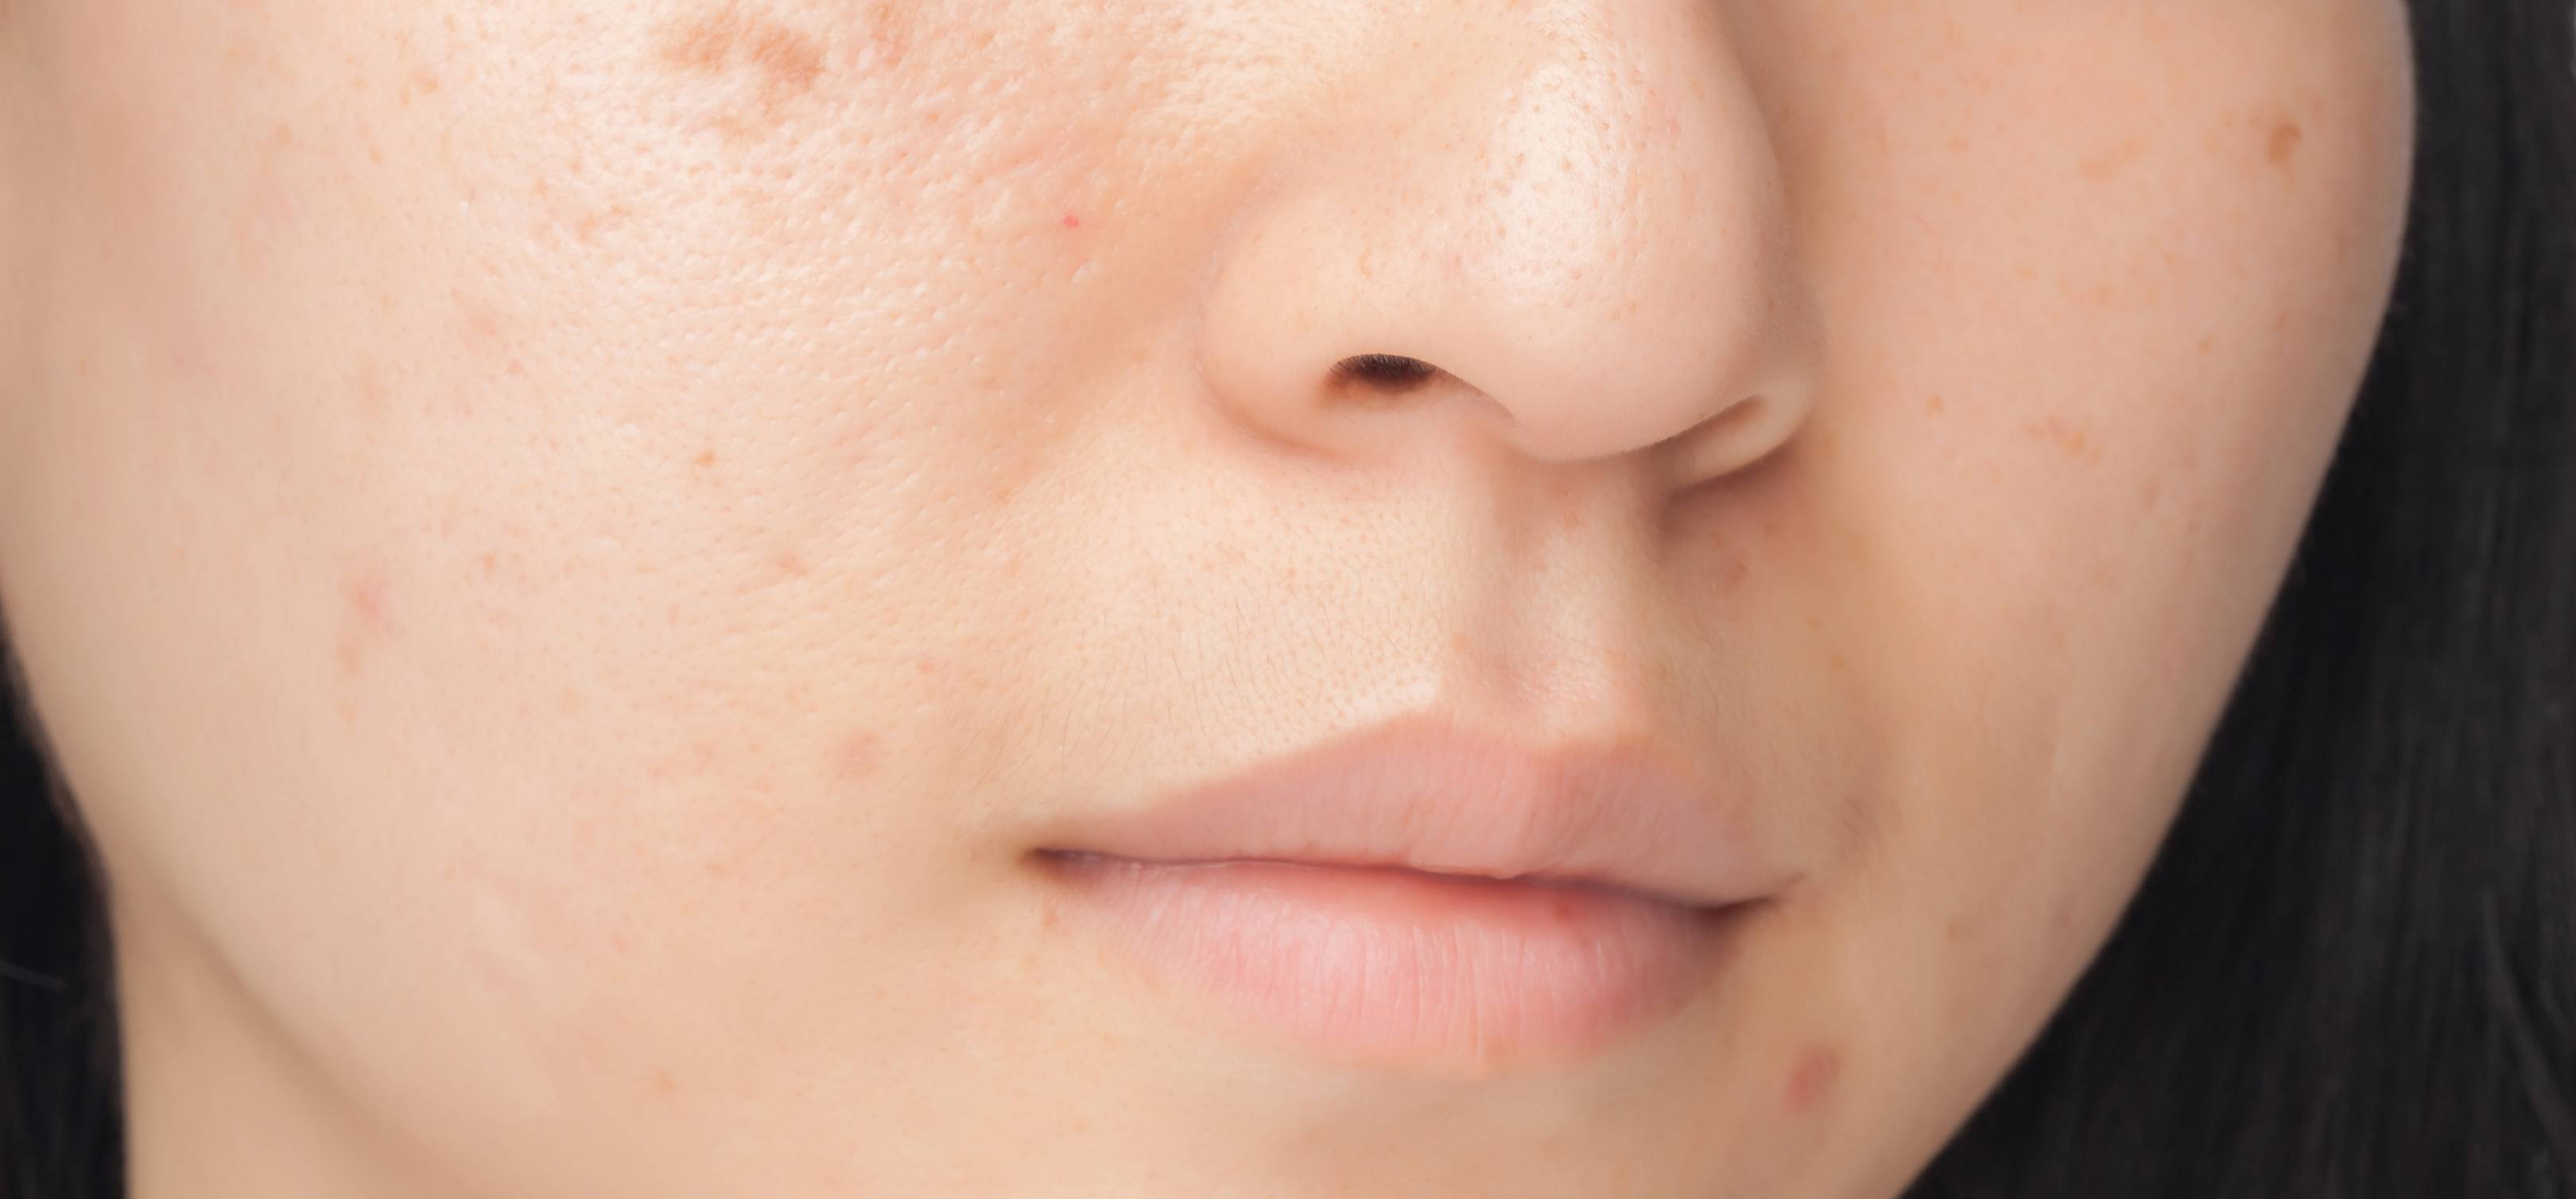 How To Get Rid Of Acne Scars: Expert Advice, Preventatives